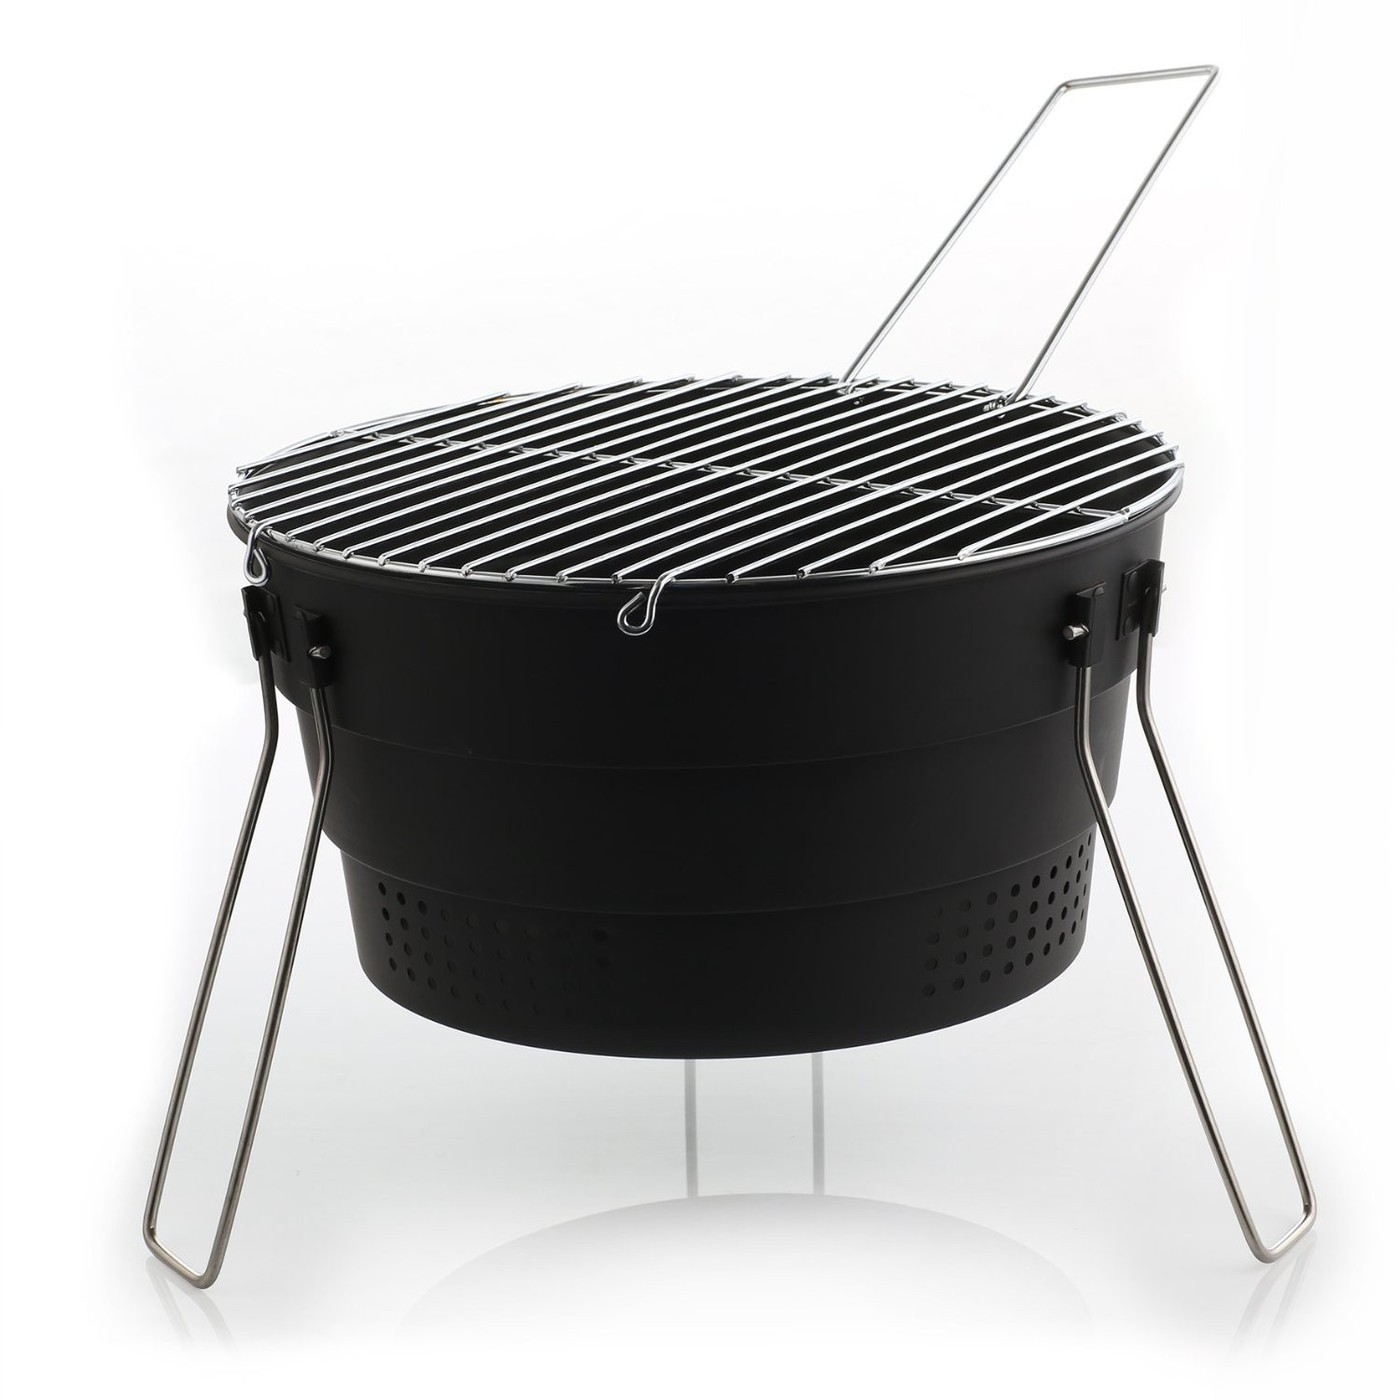 Barbecue Pop Up Grill